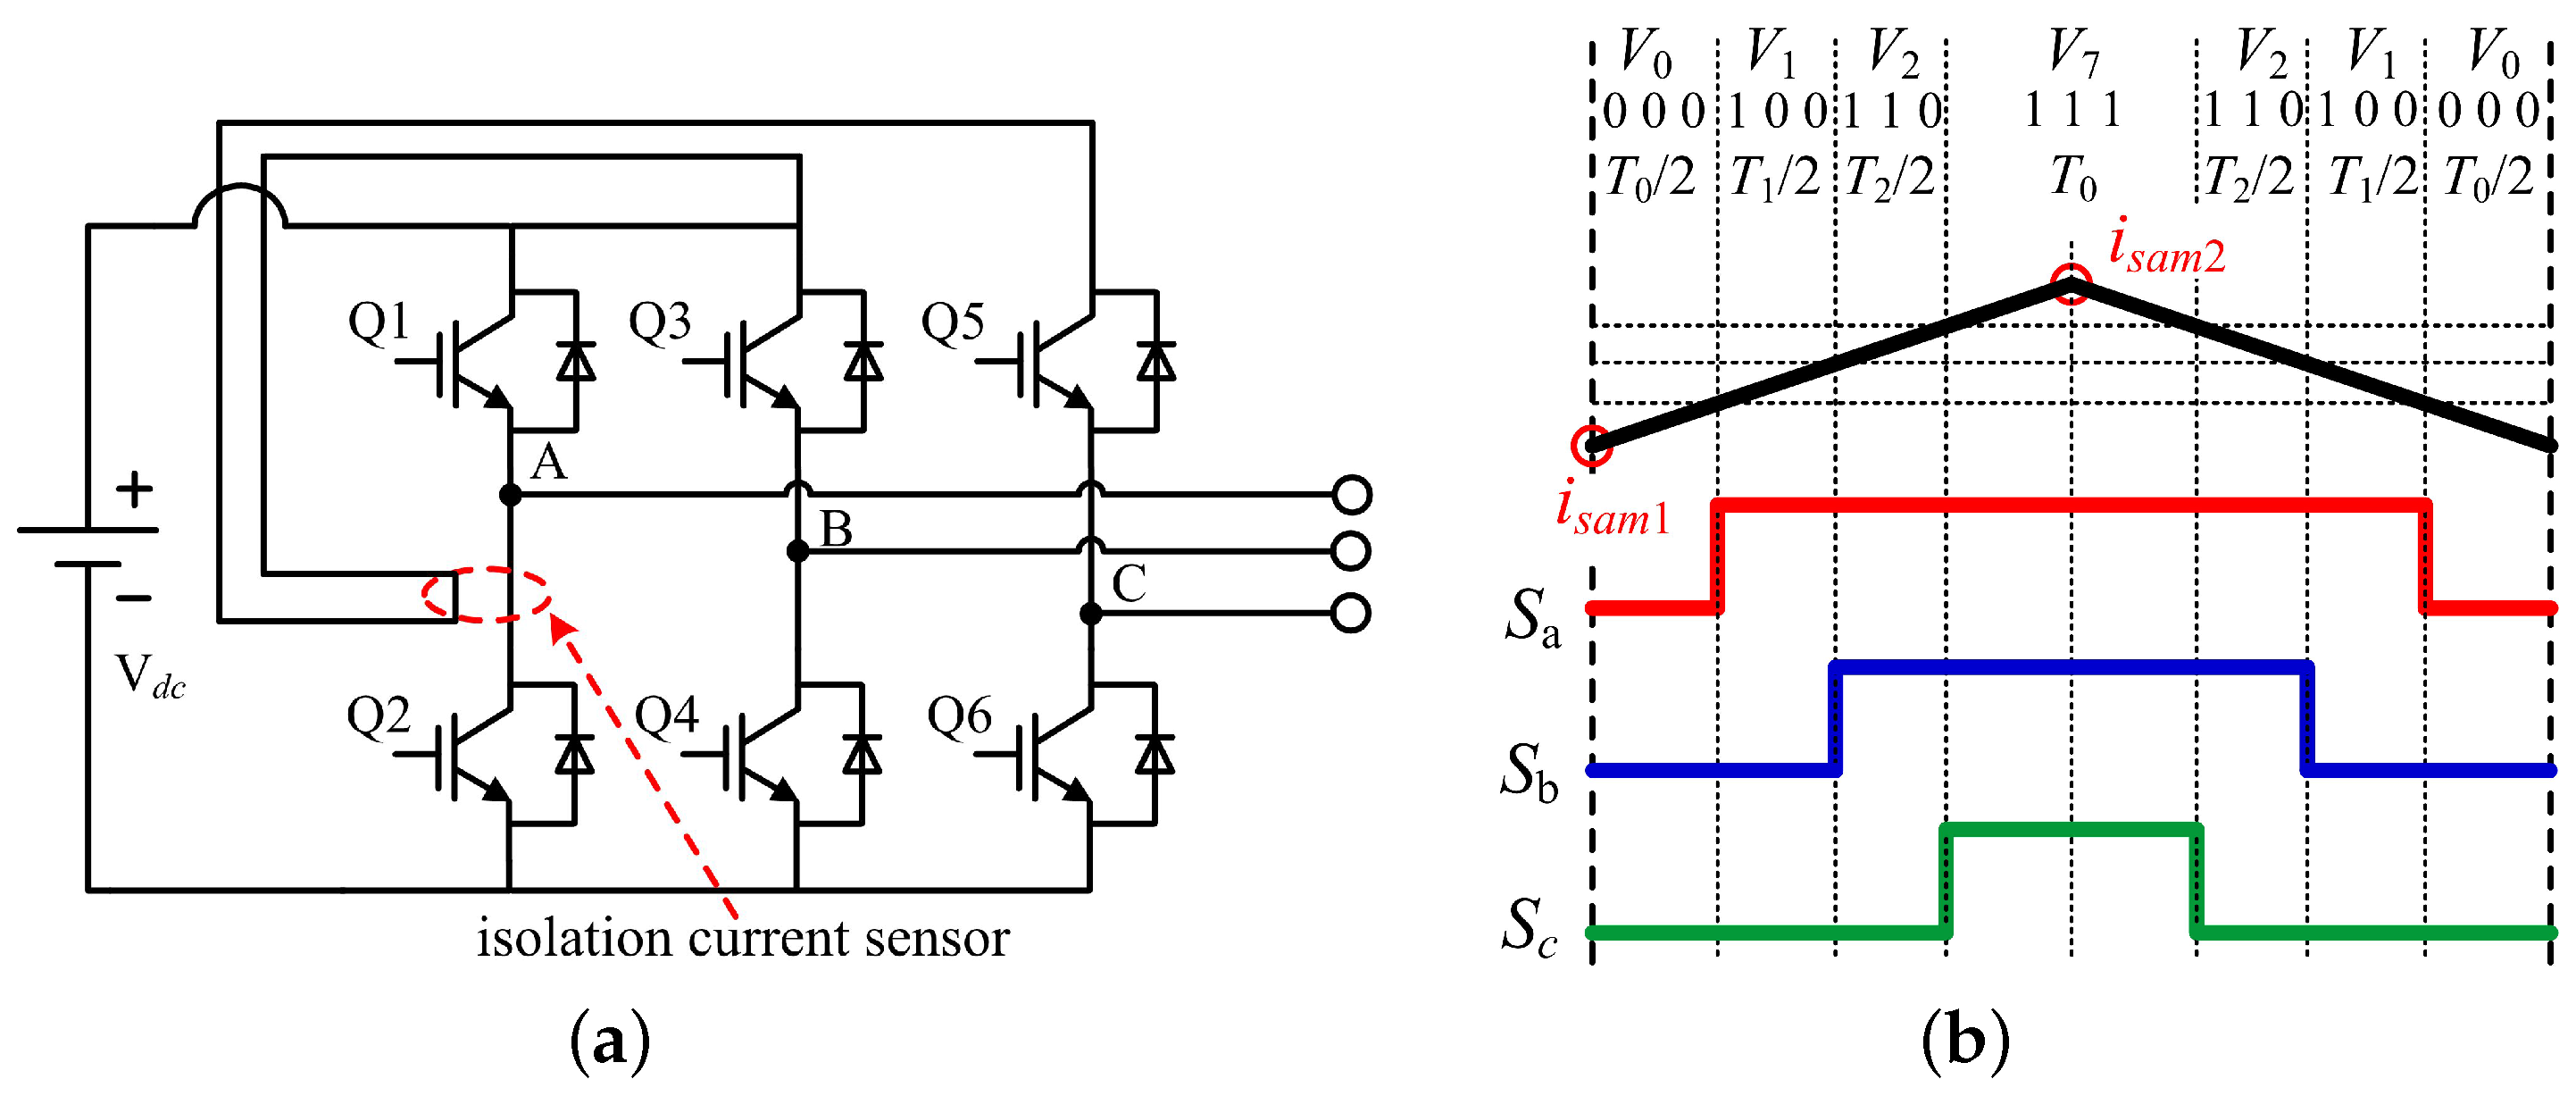 Energies | Free Full-Text | A Phase Current Reconstruction Approach on starter motor diagram, ac motor wiring diagram, ge electric motor wiring diagram, permanent magnet motor diagram, synchronous motor starter schematic, synchronous motor winding diagram,